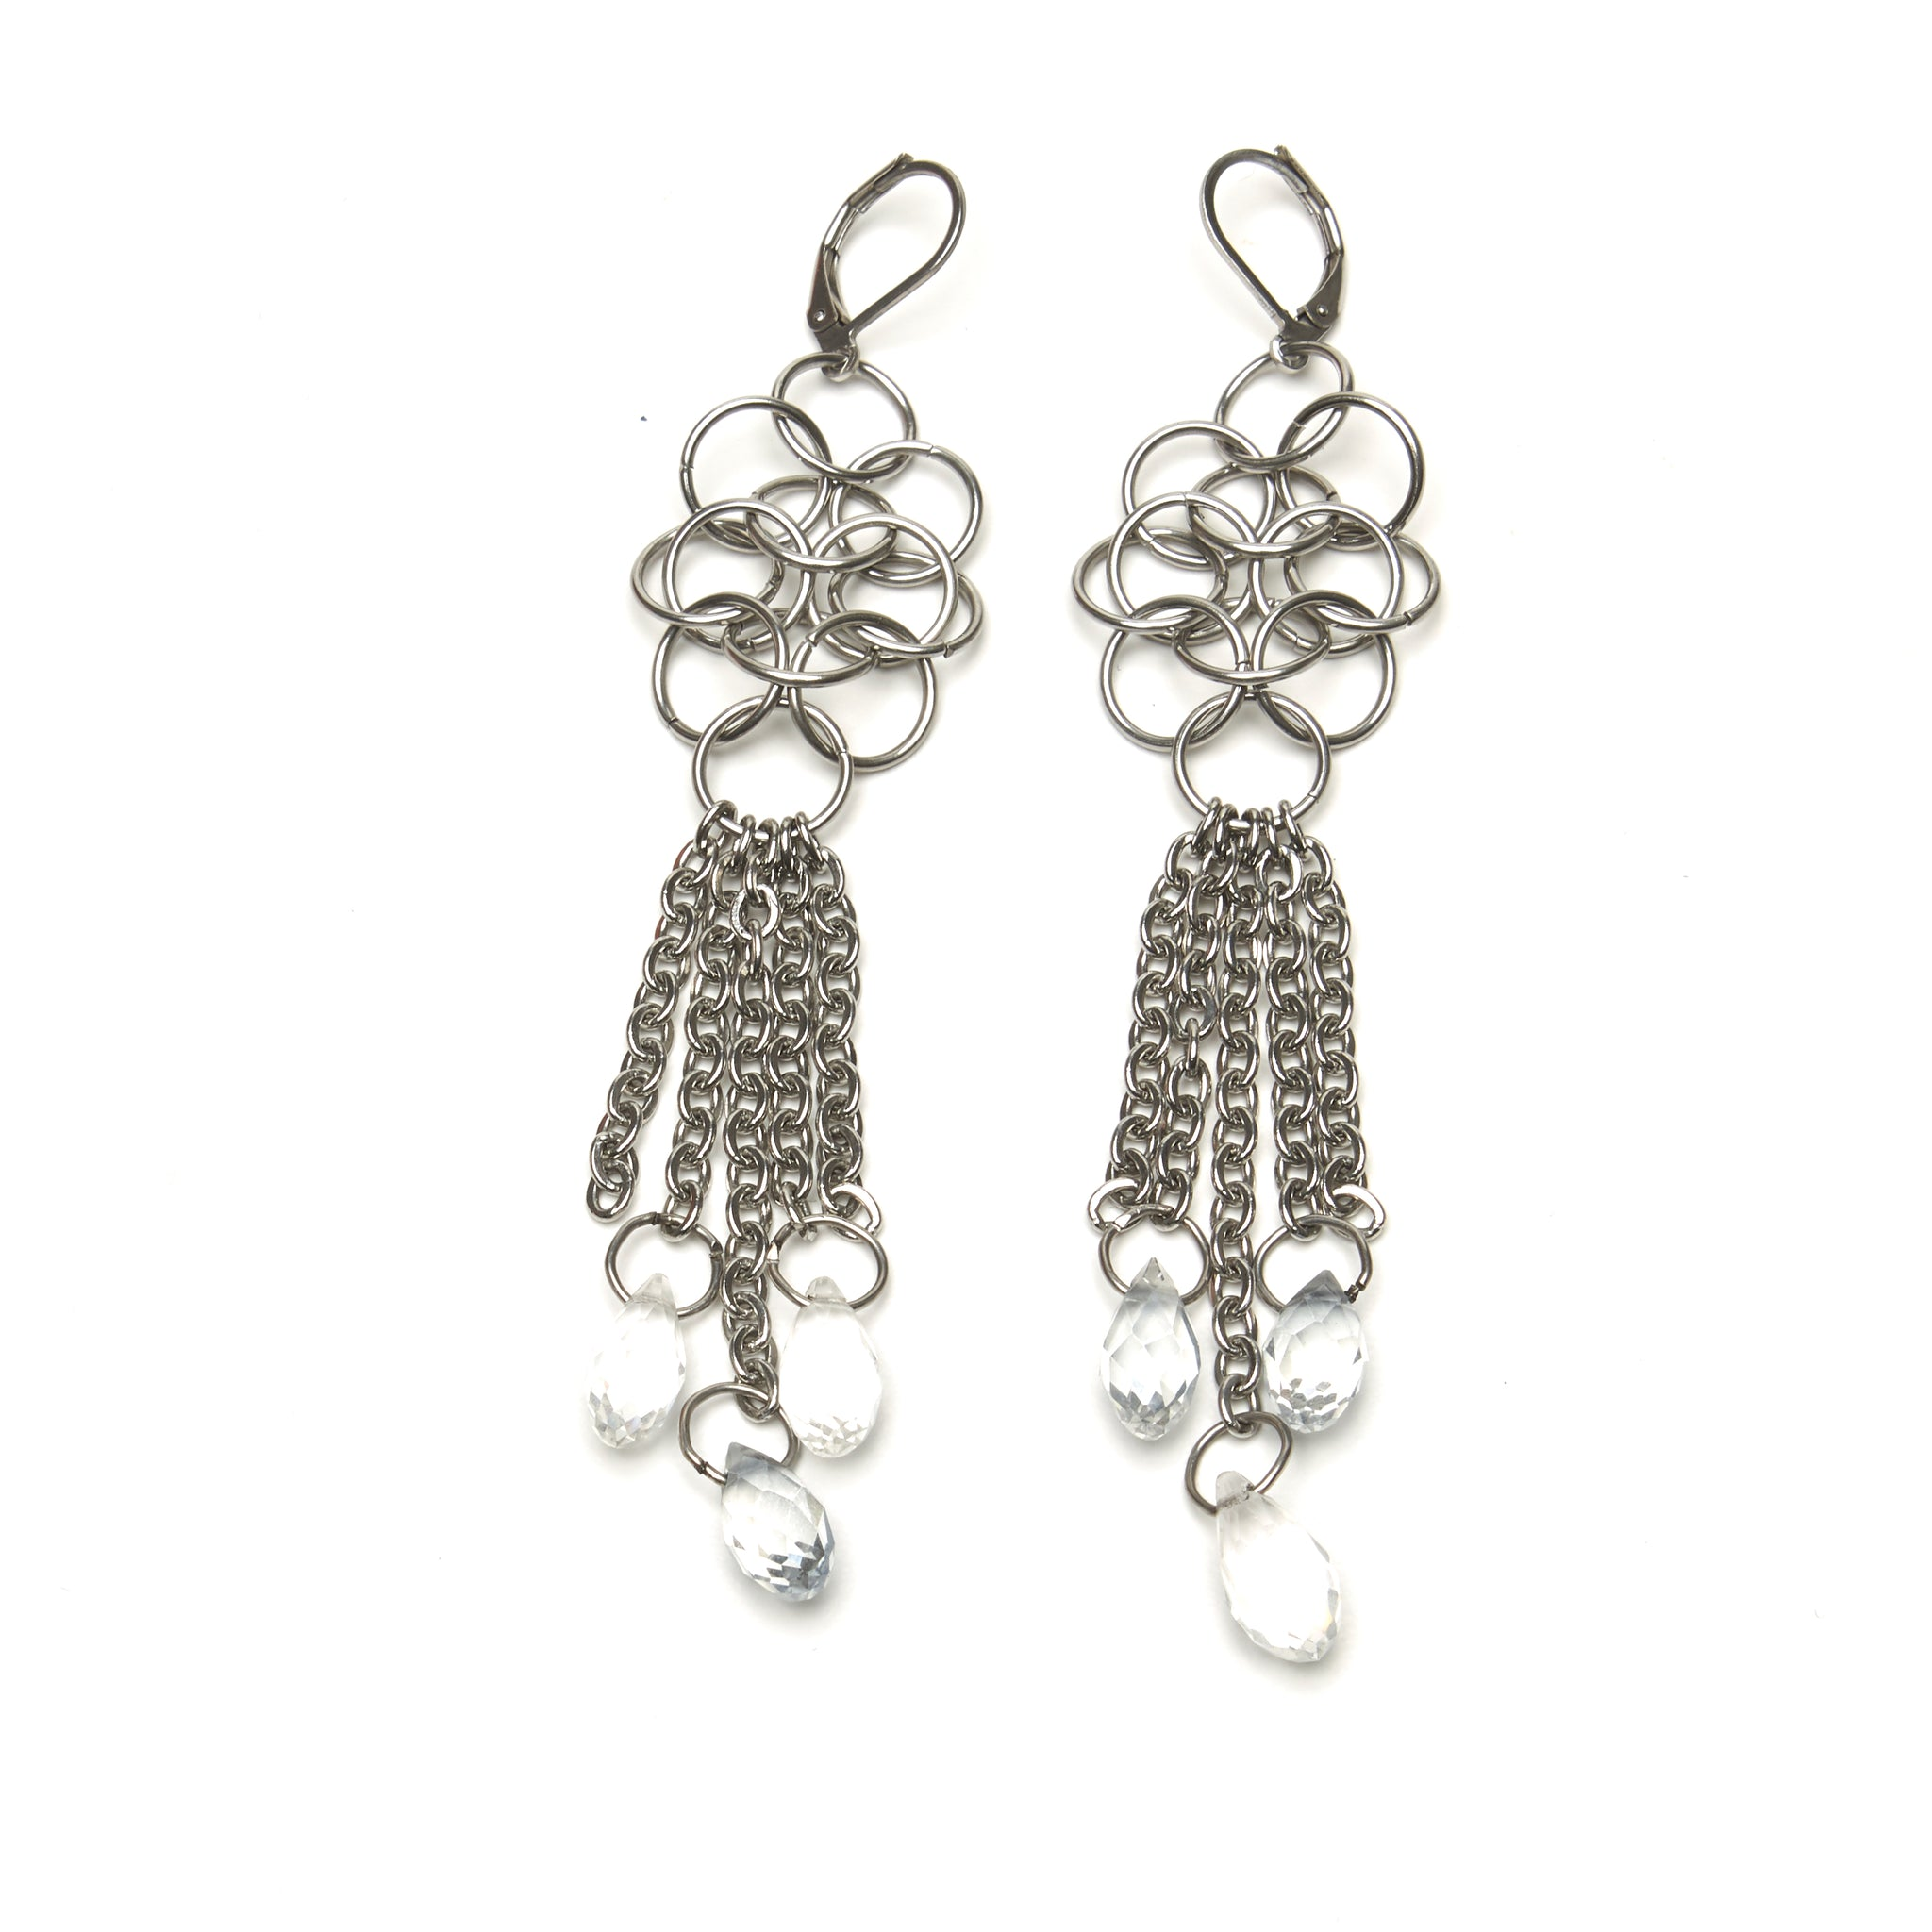 CHAINMAILLE DROP EARRINGS WITH BRIOLETTES by nyet jewelry.